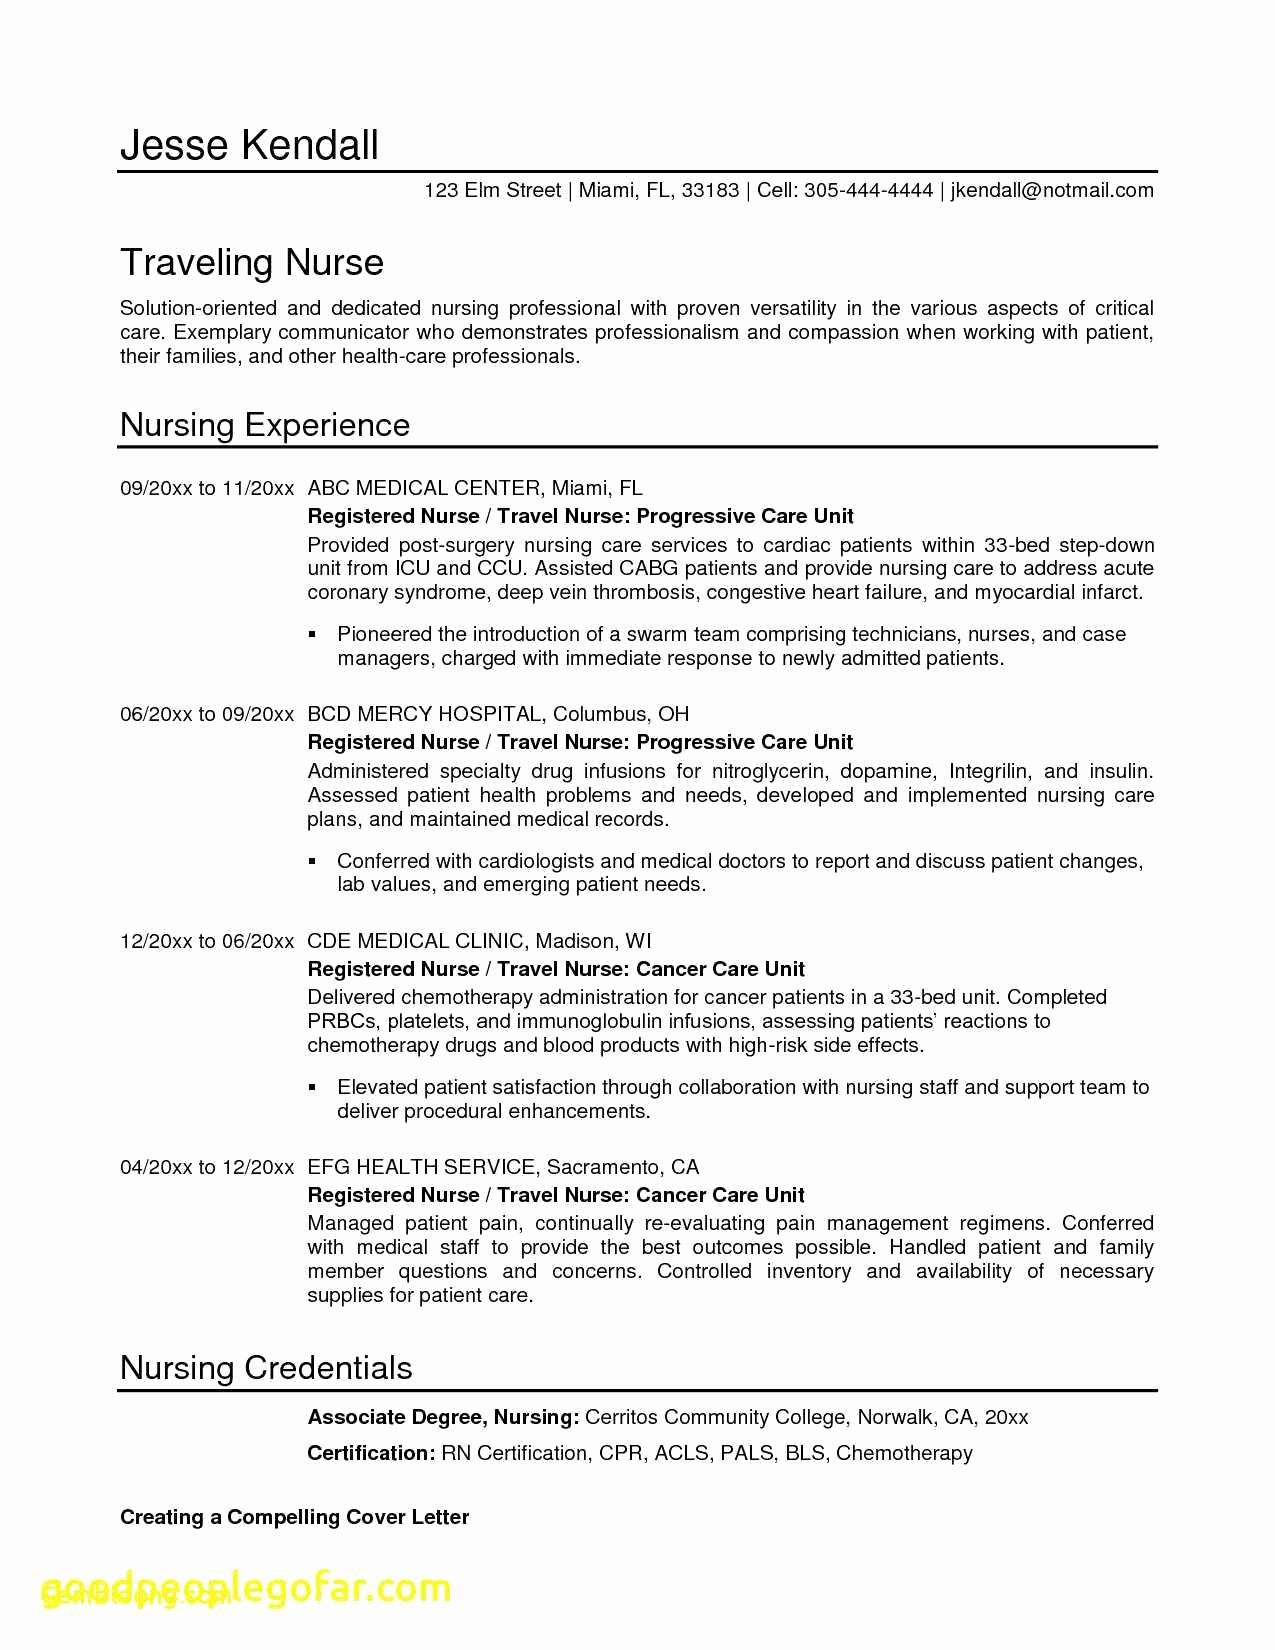 A Professional Resume - 18 How to Write A Professional Resume